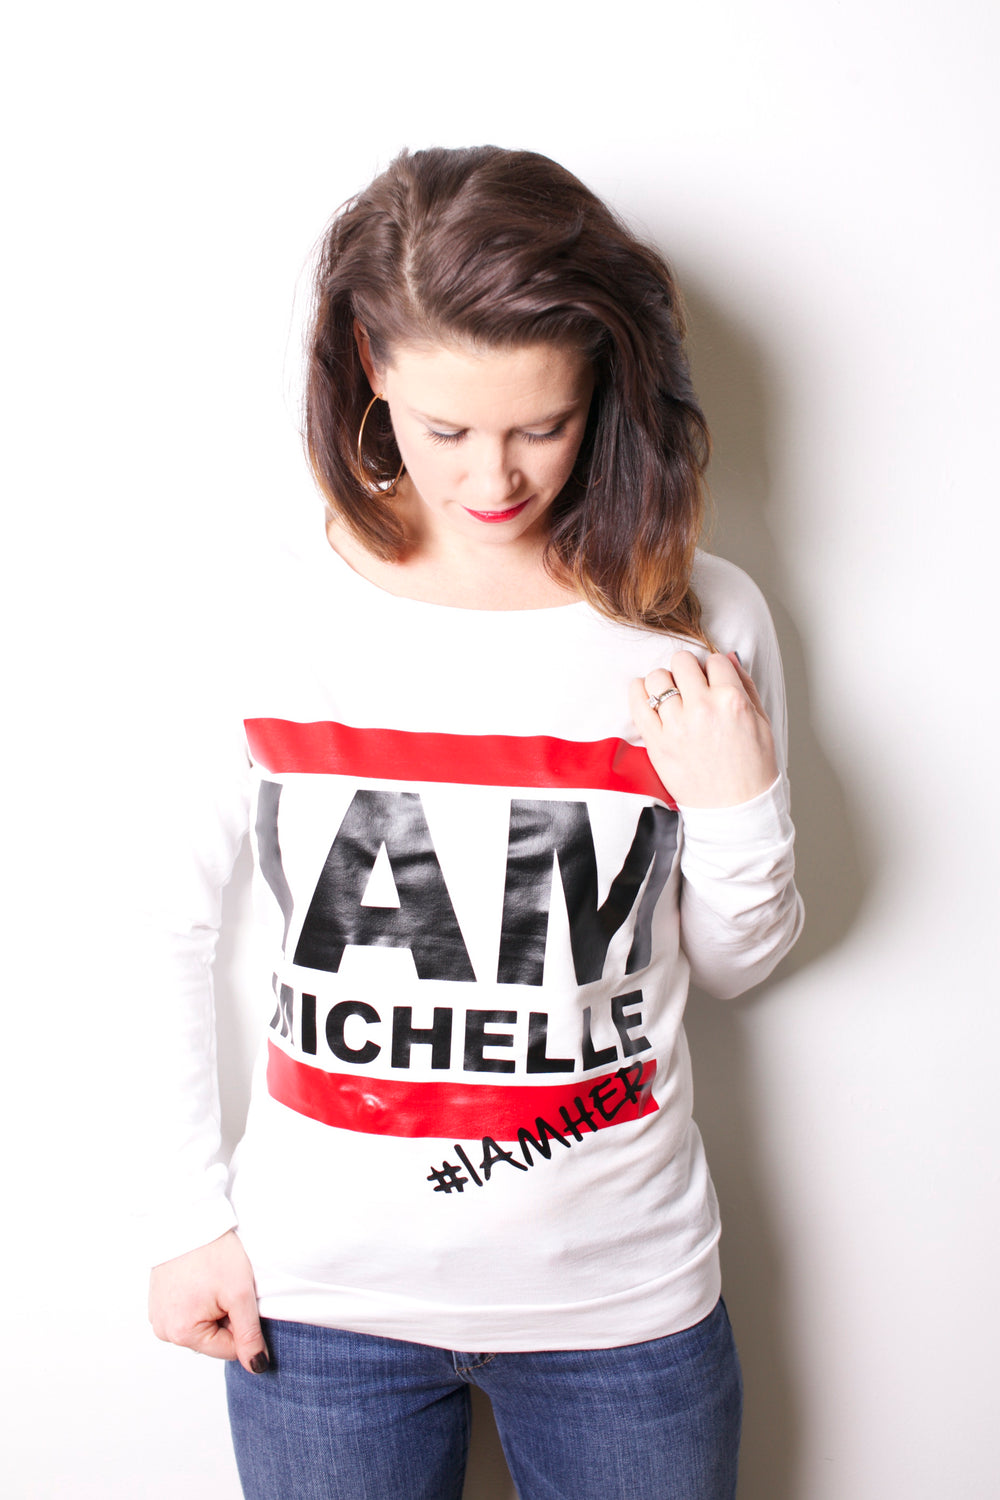 I AM MICHELLE (FLOTUS Inspired) - Women's Long Sleeve - White - I AM HER Apparel, LLC